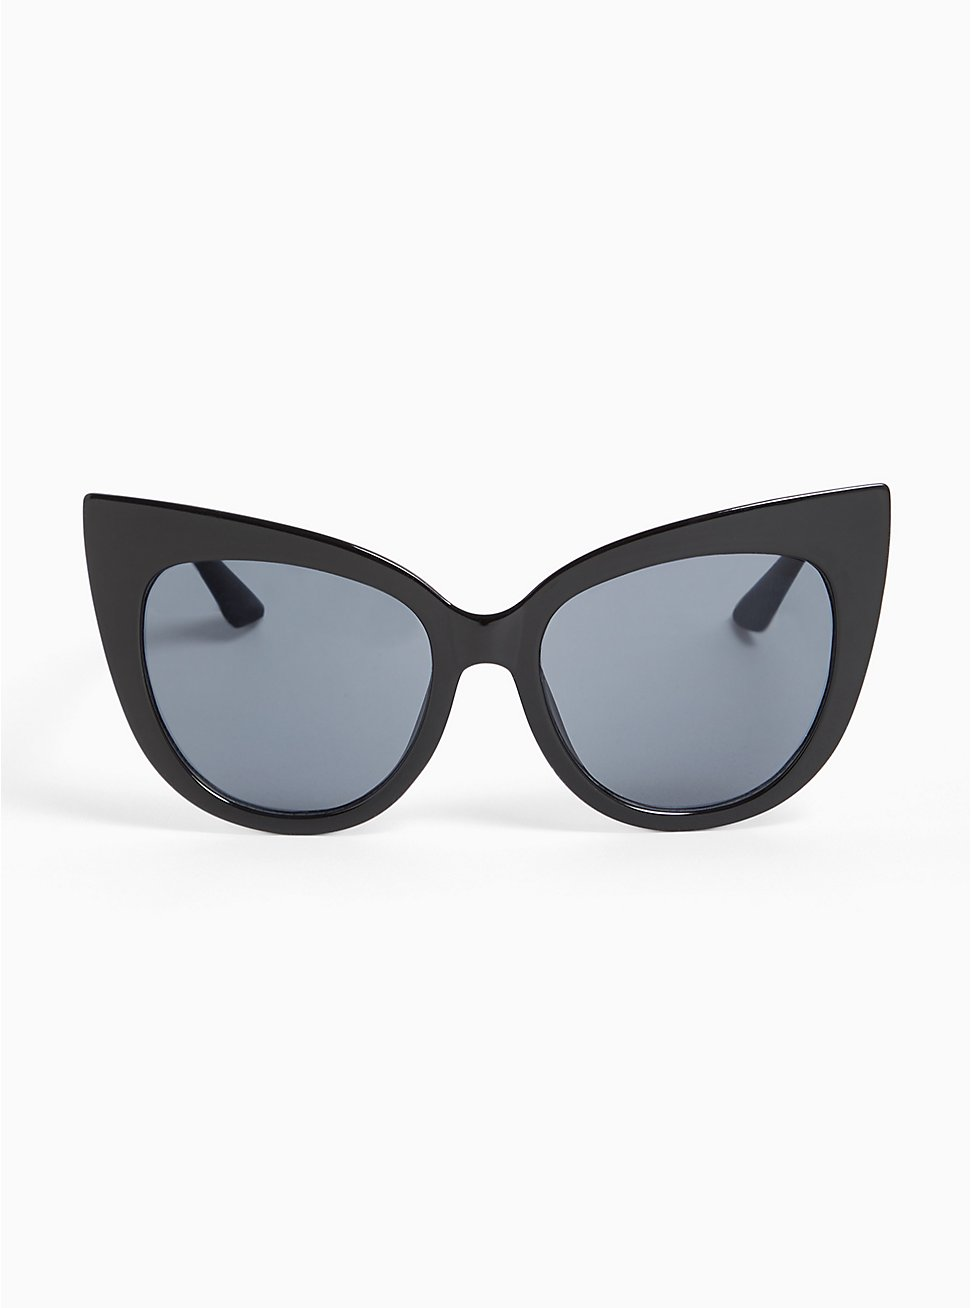 Black Cat Eye Sunglasses, , hi-res